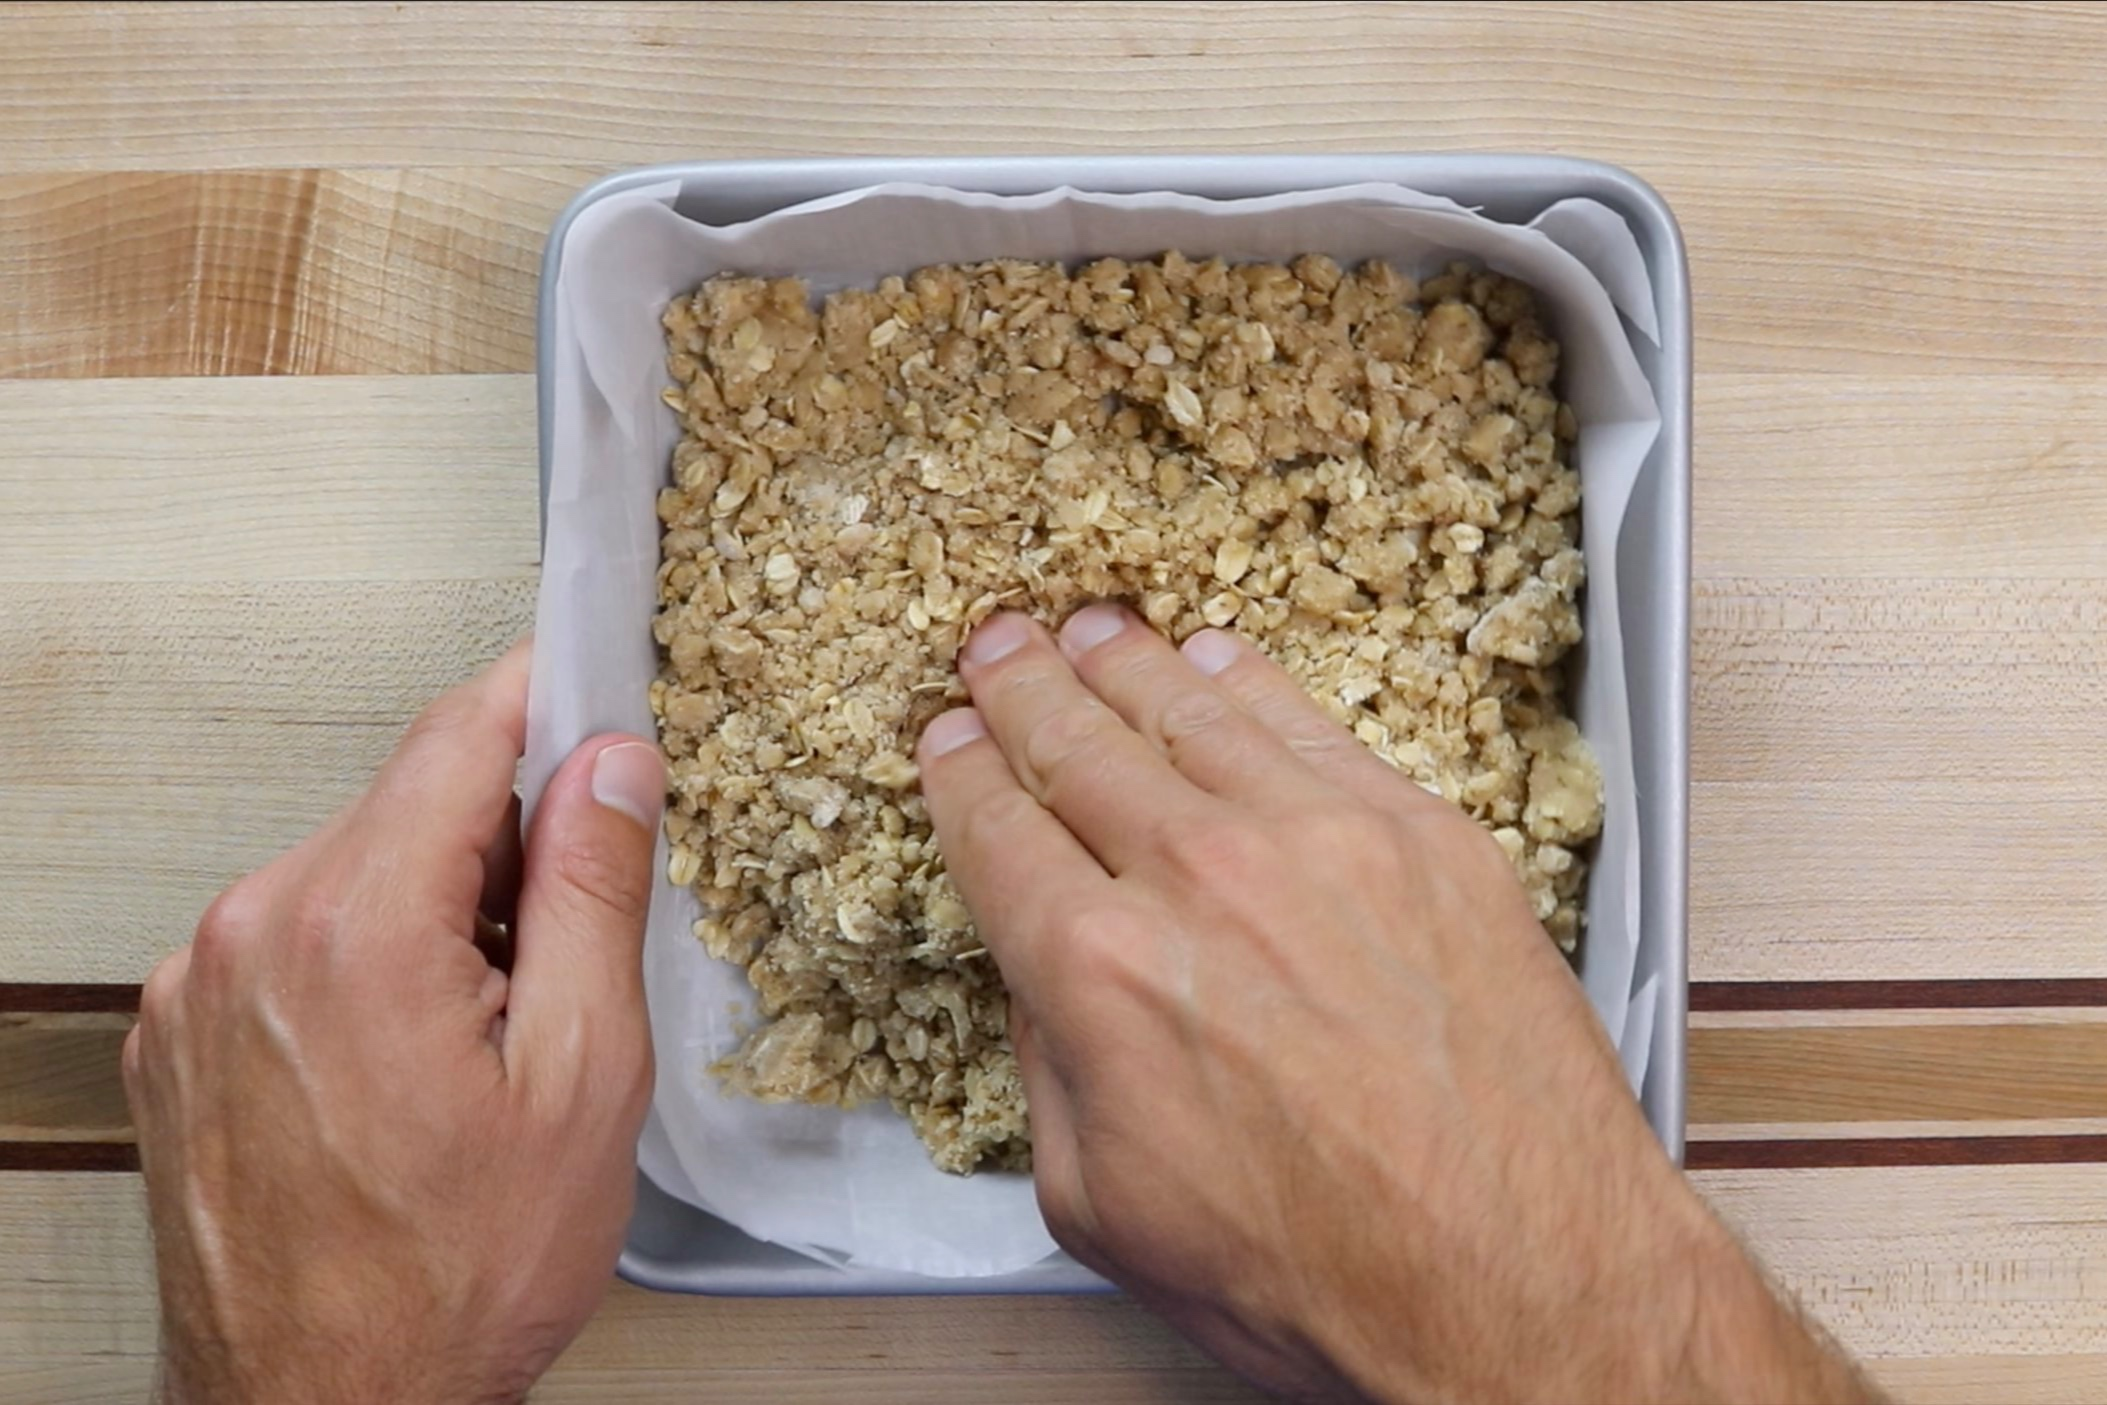 6. Press remaining crumble into the bottom of your baking dish. -